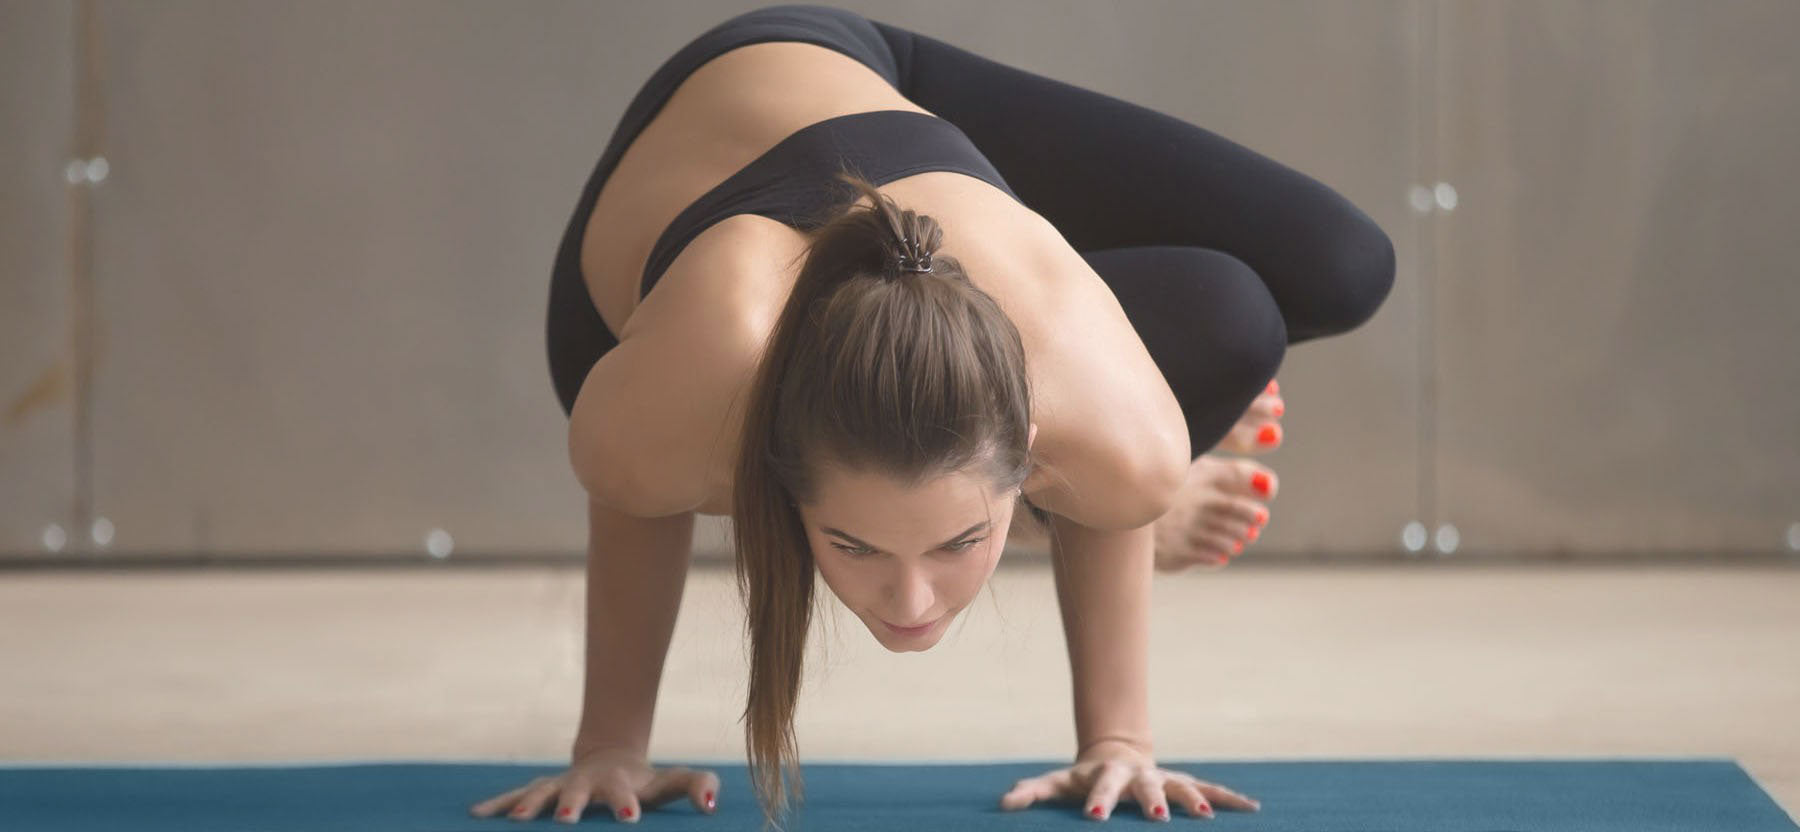 Zenzation Athletics - a Trimax Sports Brand | Yoga | Fitness | Recovery Products for Home and Studio Use